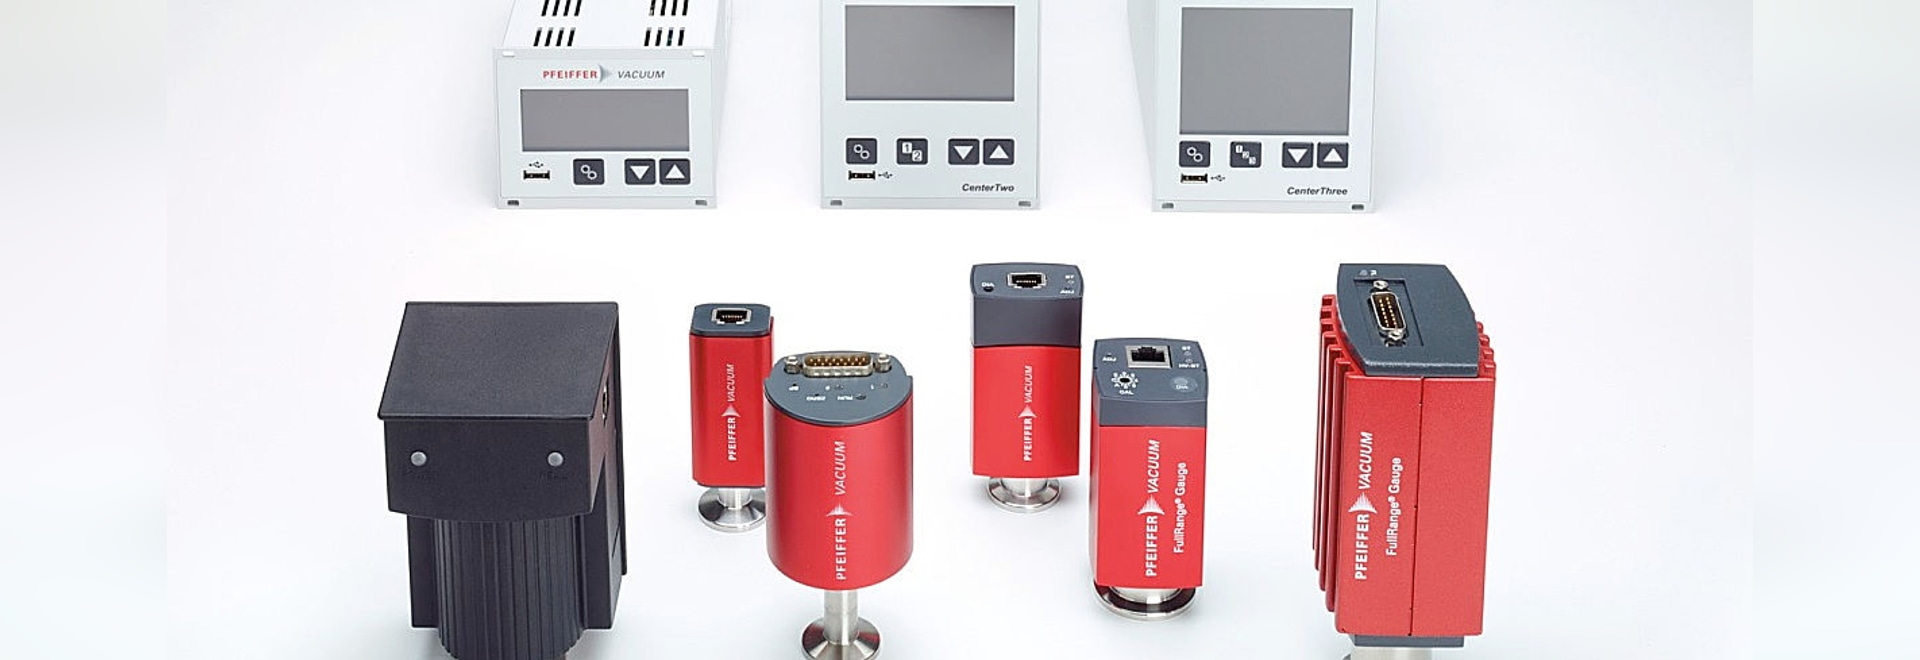 Total pressure measurement equipment from Pfeiffer Vacuum expands to include a new addition